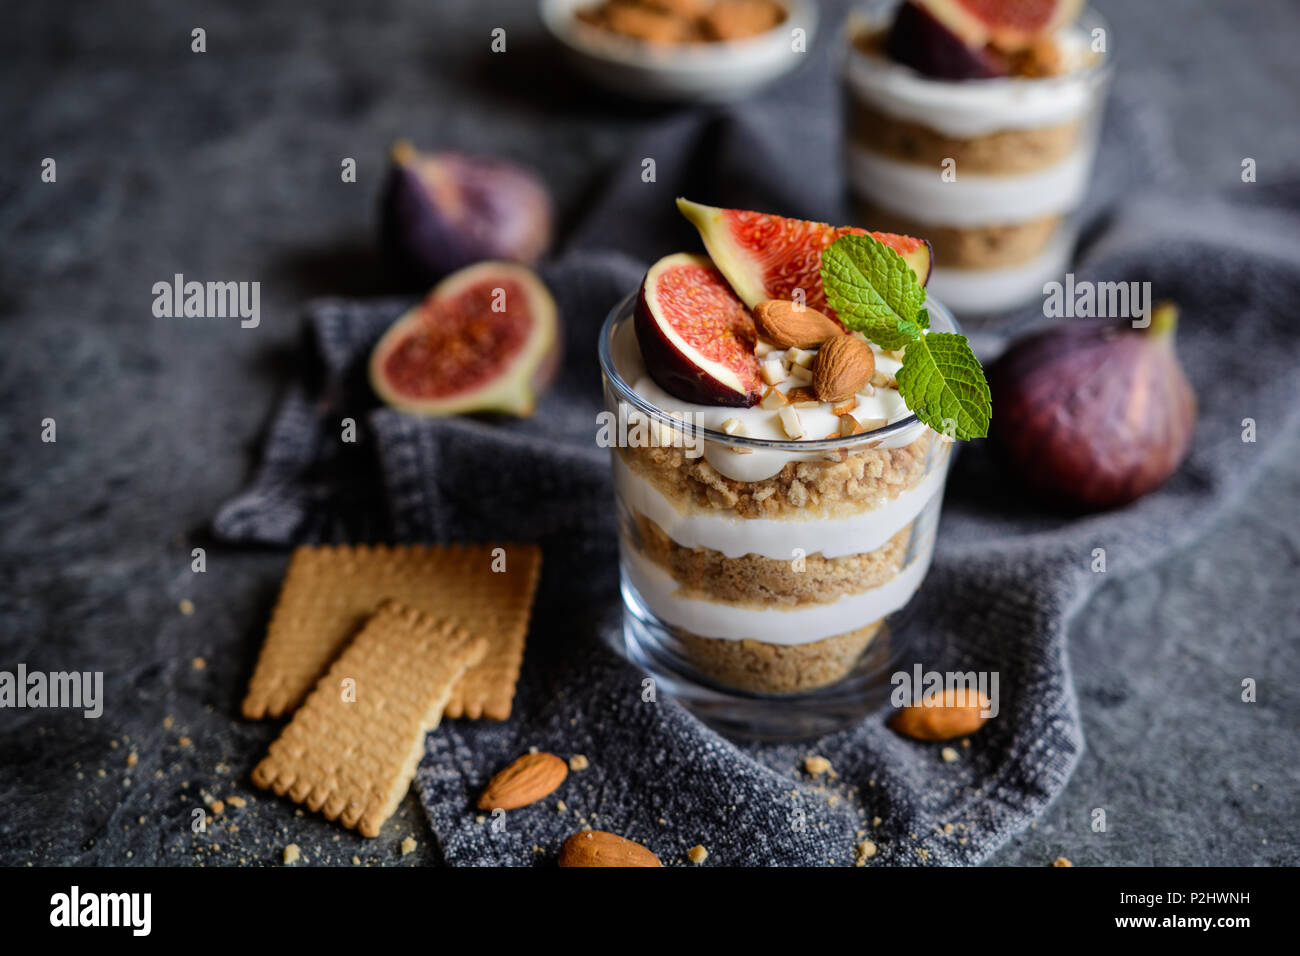 Layered mascarpone dessert with crushed vanilla biscuits, figs and almonds in a glass jar - Stock Image